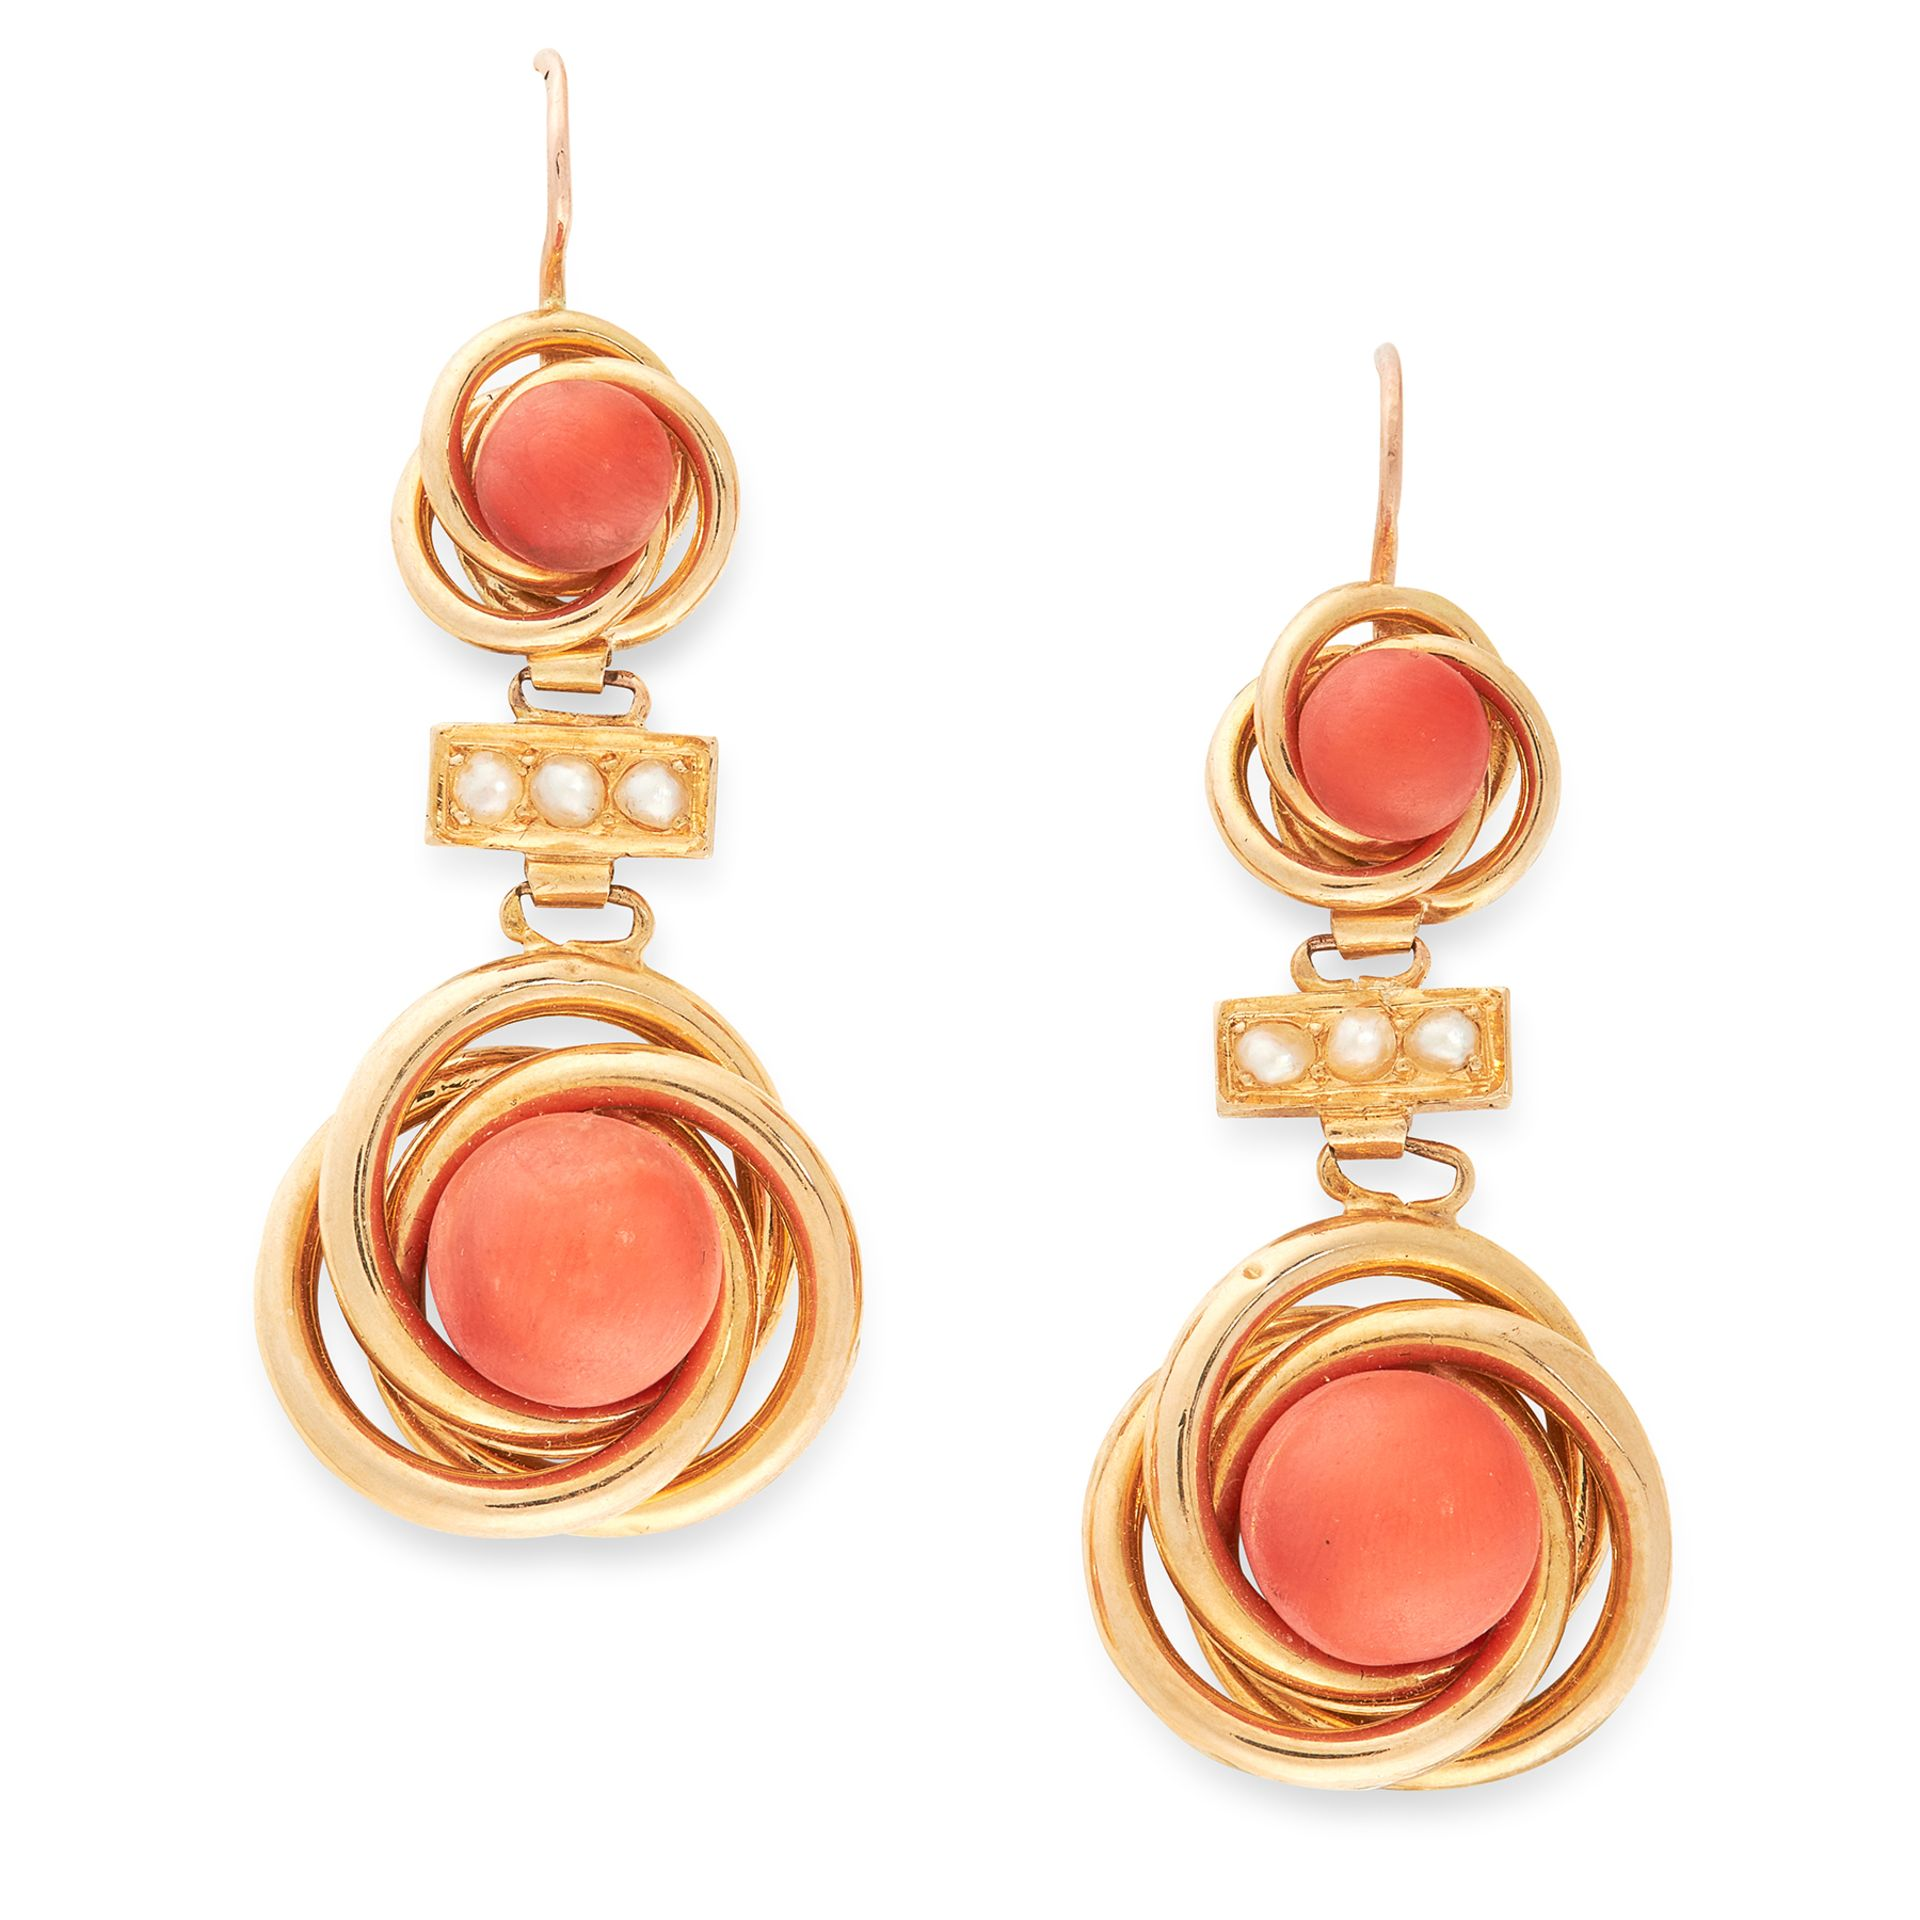 A PAIR OF CORAL AND PEARL EARRINGS in 18ct yellow gold, each comprising two graduated coral beads